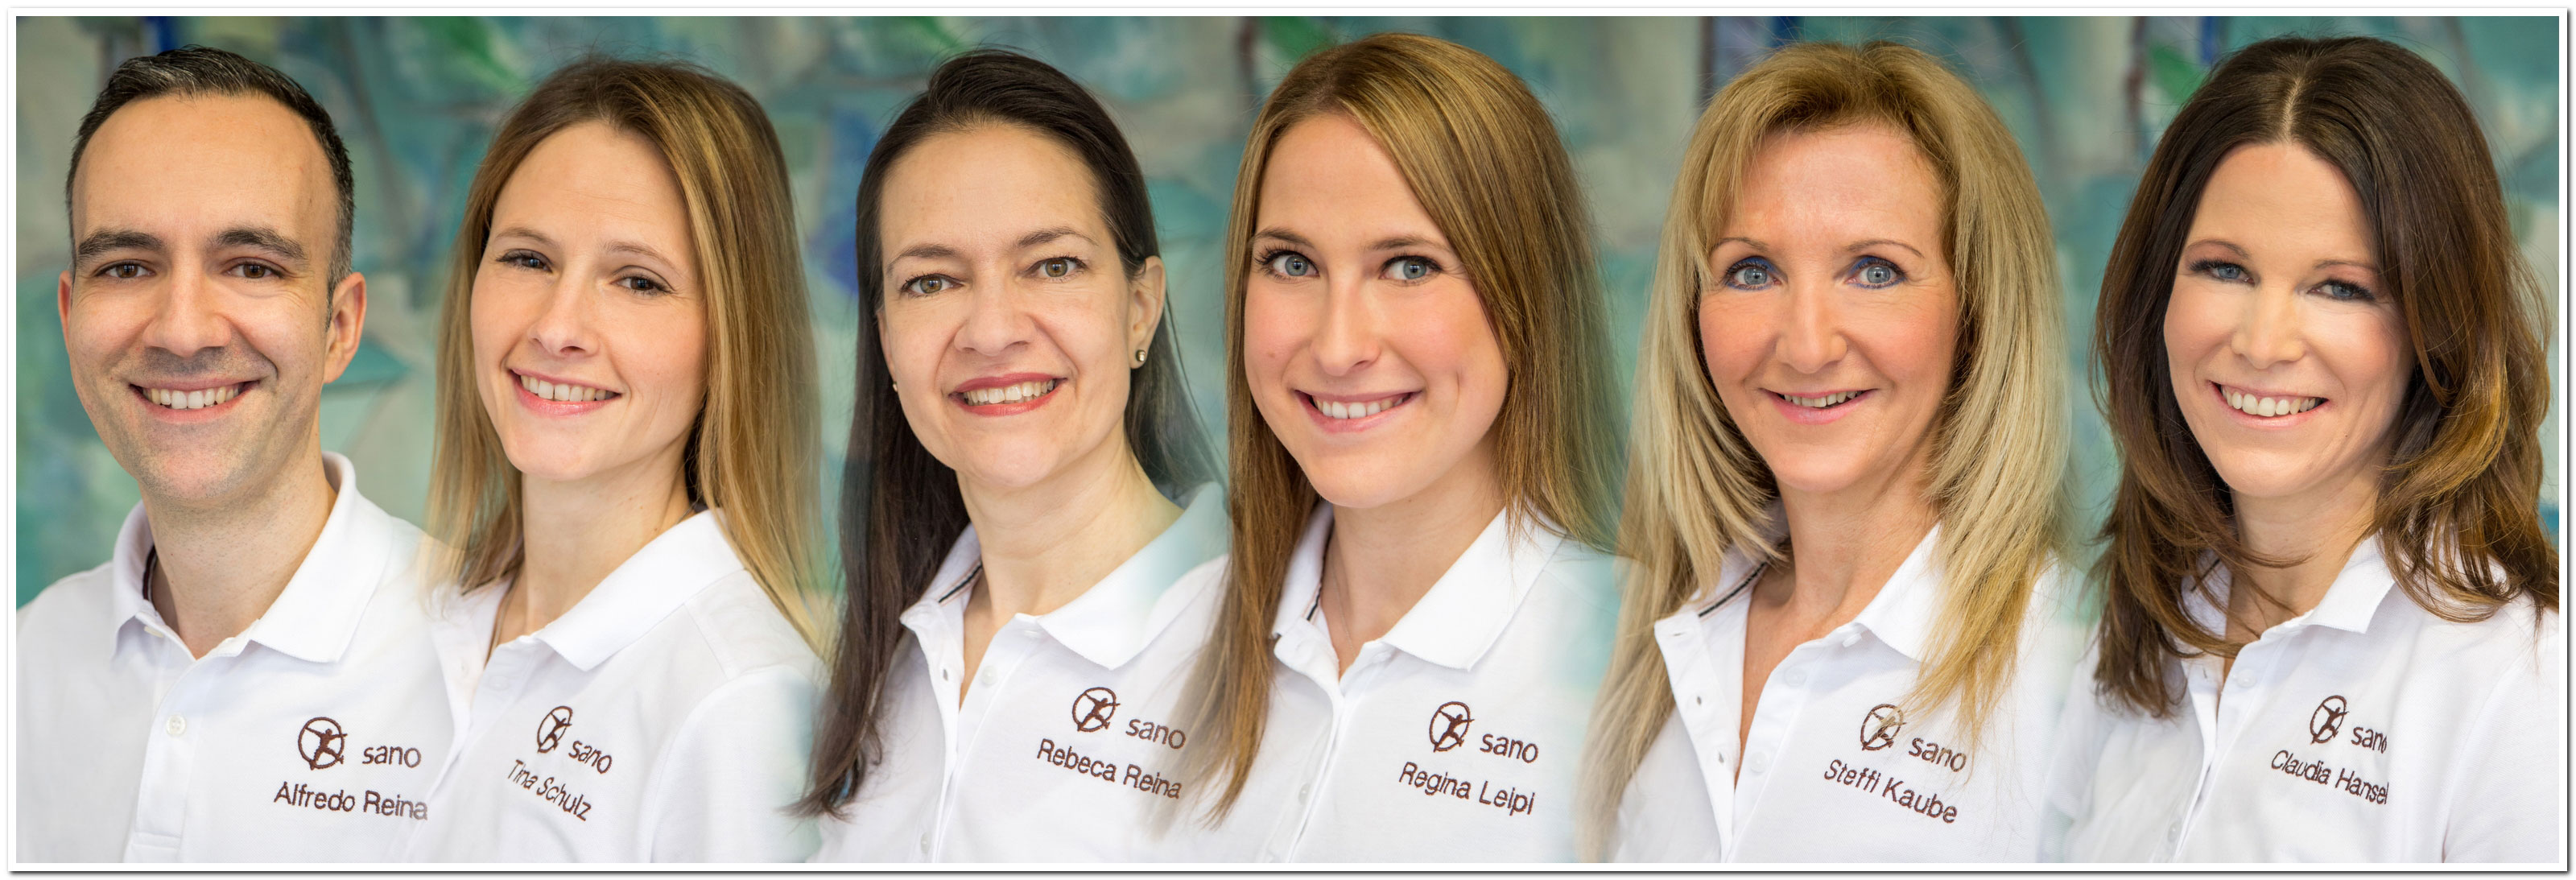 Team für Physiotherapie, Prävention, Massage, manuelle Therapie der Praxis sano in Göppingen